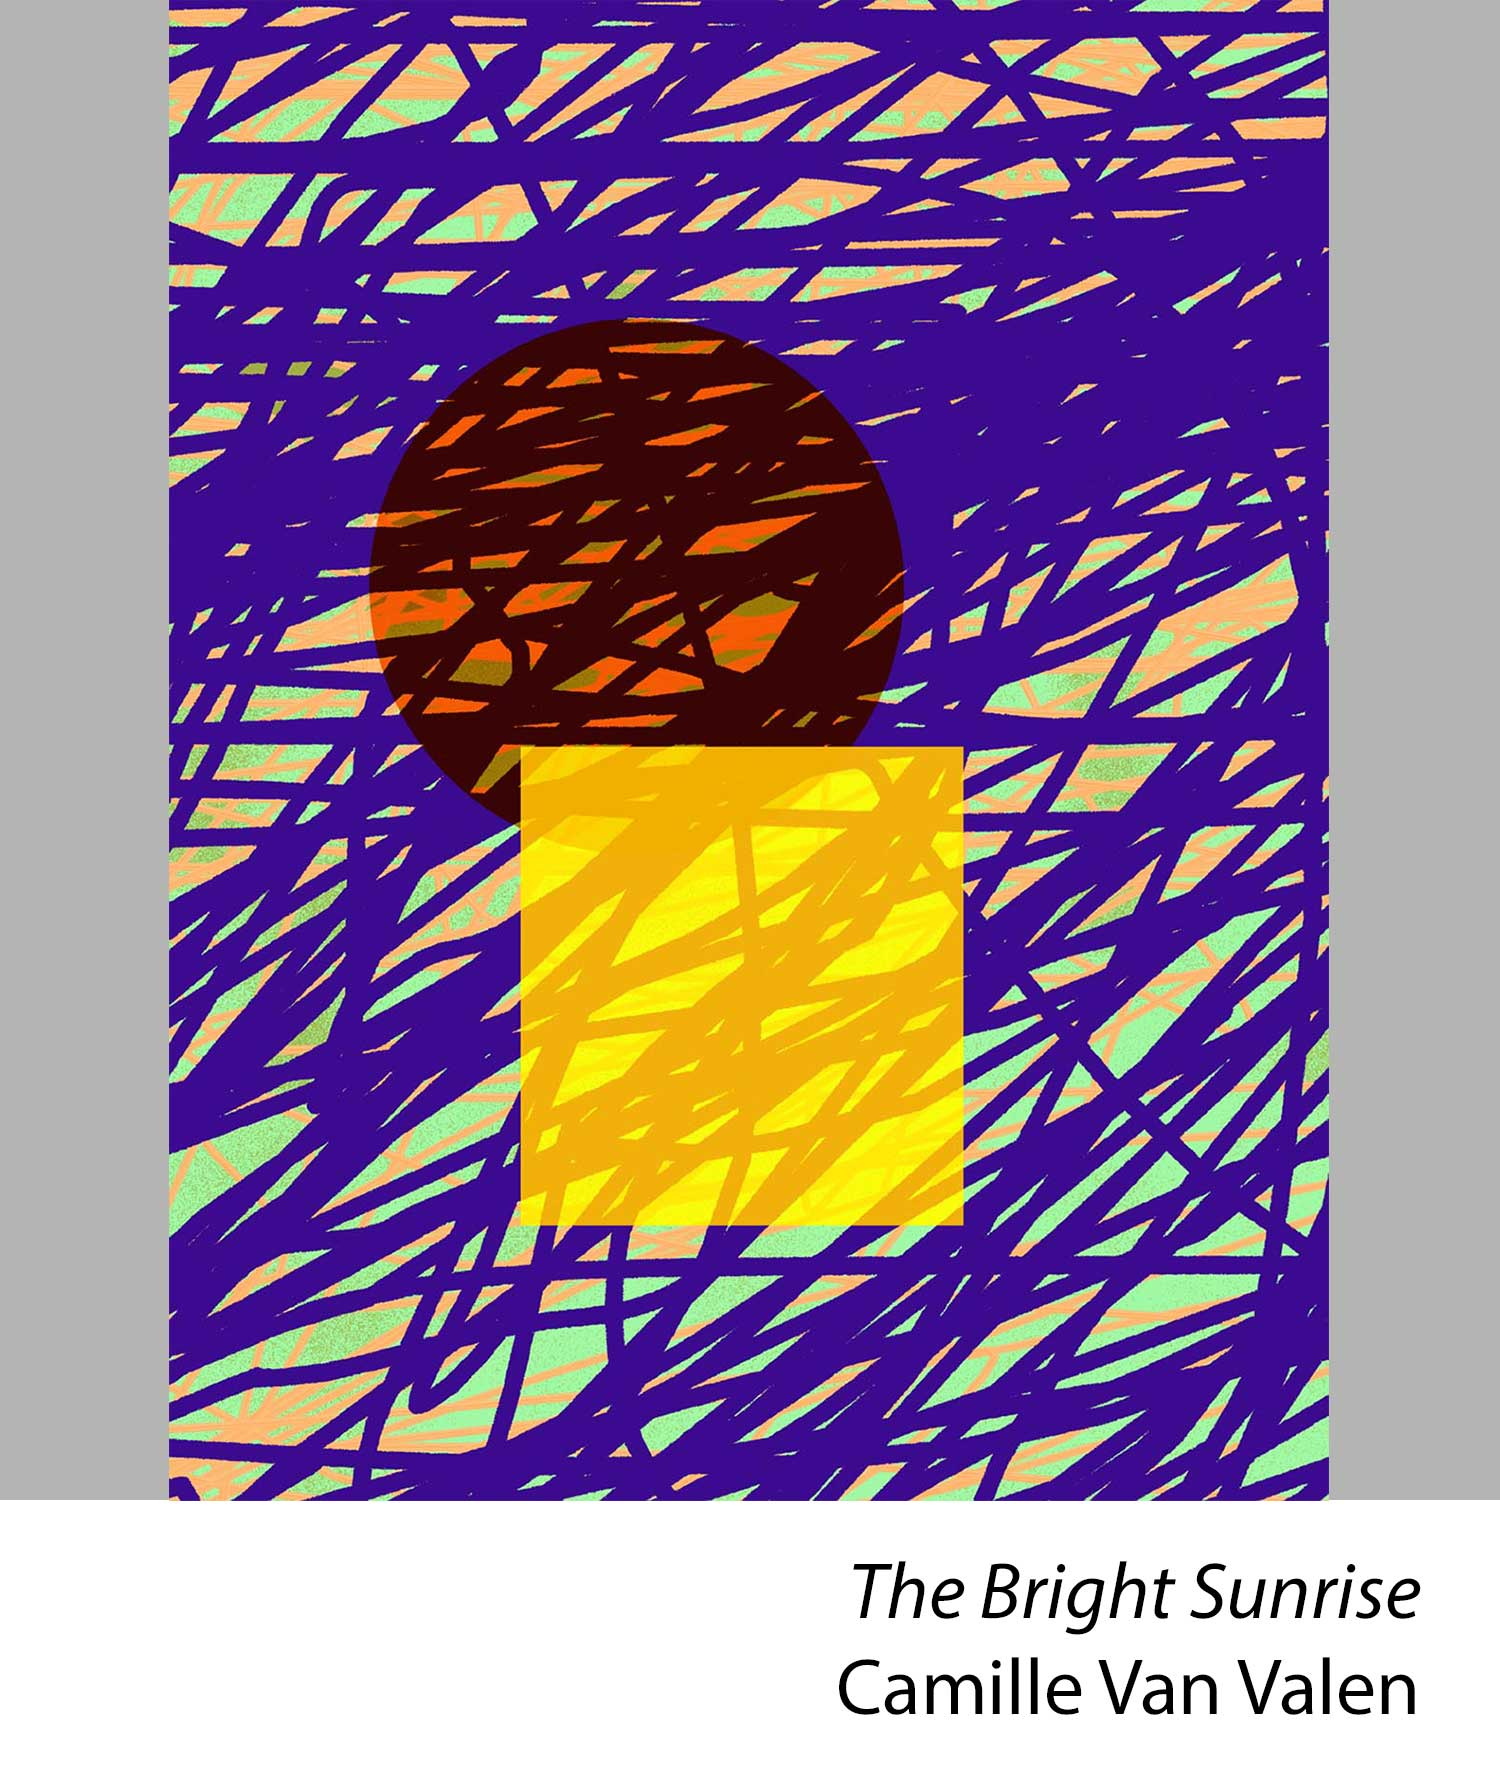 The Bright Sunrise by Camille Van Valen